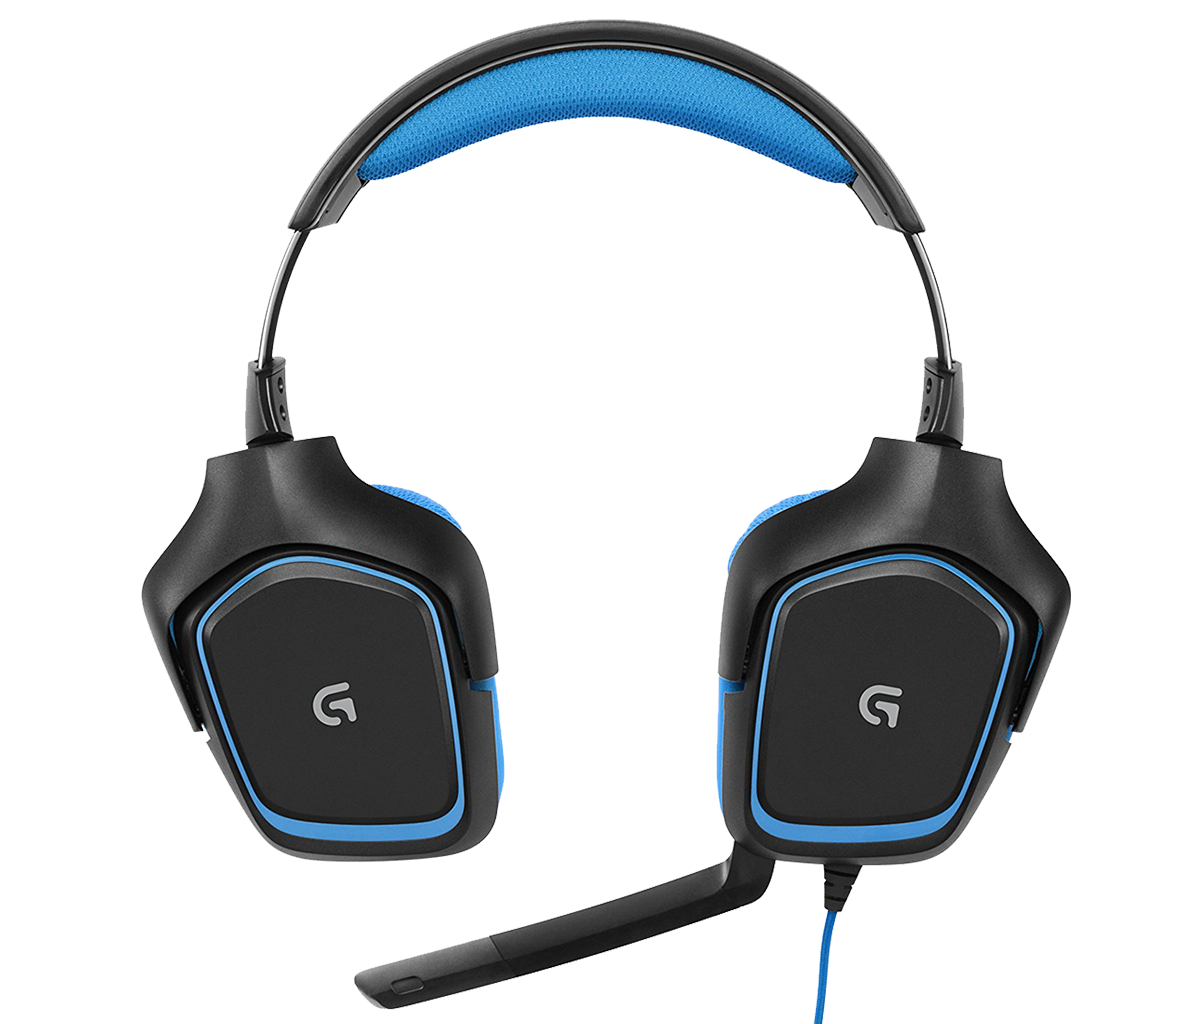 logitech g430 dts headphone X and Dolby 7.1 surround